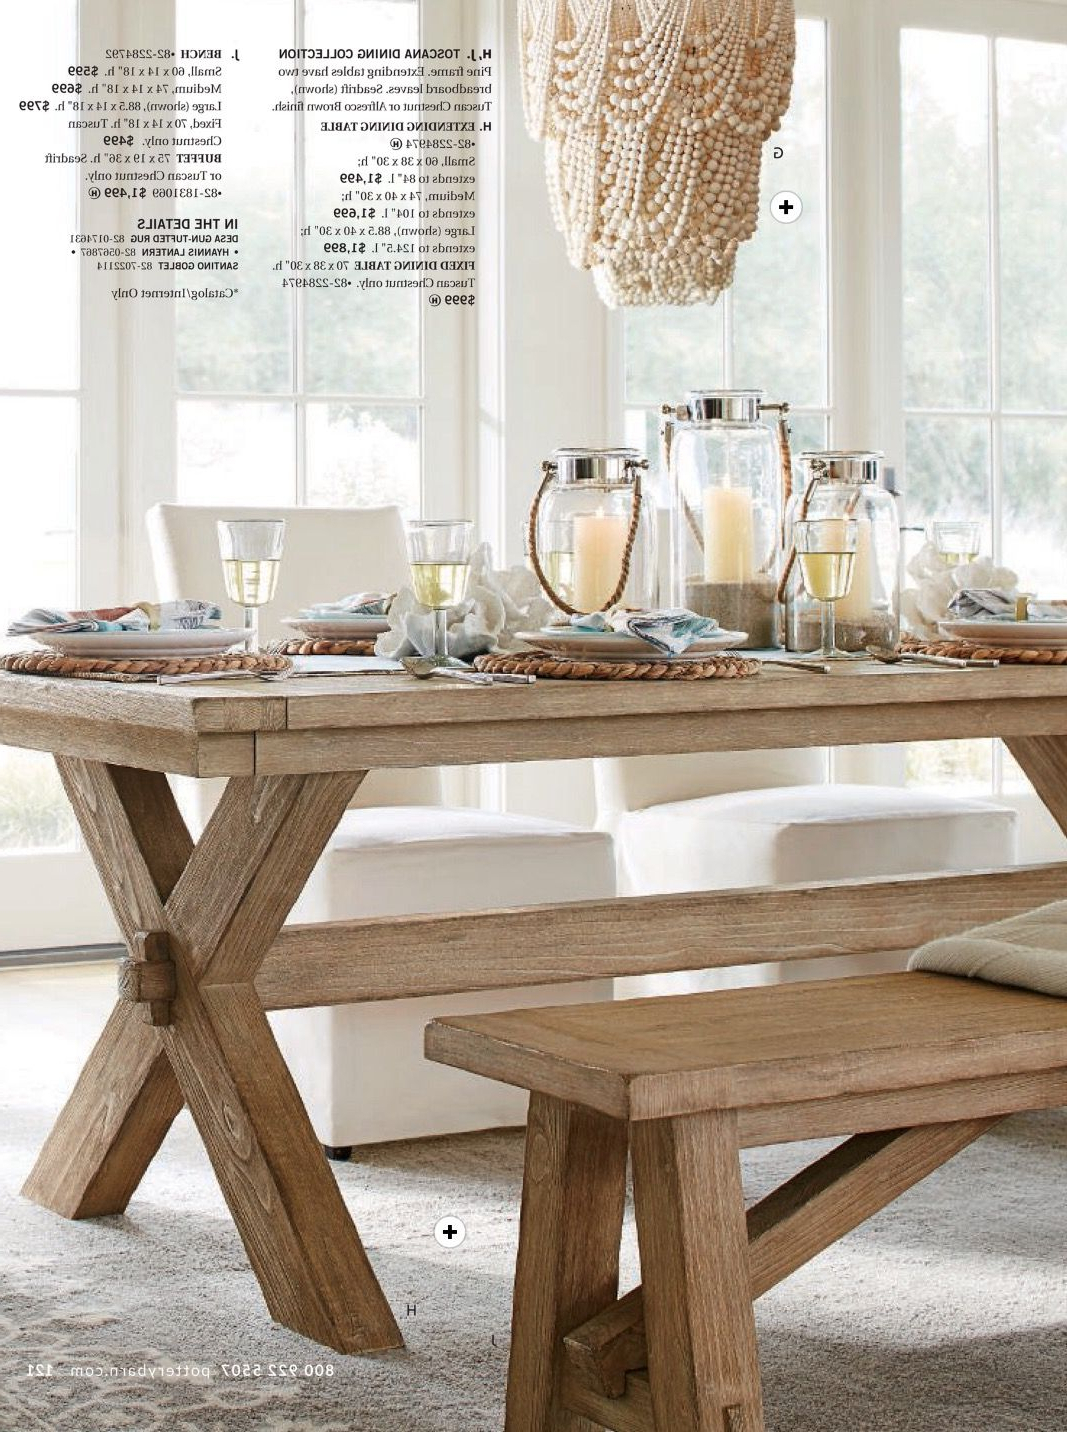 2019 Toscano Dining Table And Bench In Seadrift, Amelia Wood Bead within Tuscan Chestnut Toscana Dining Tables